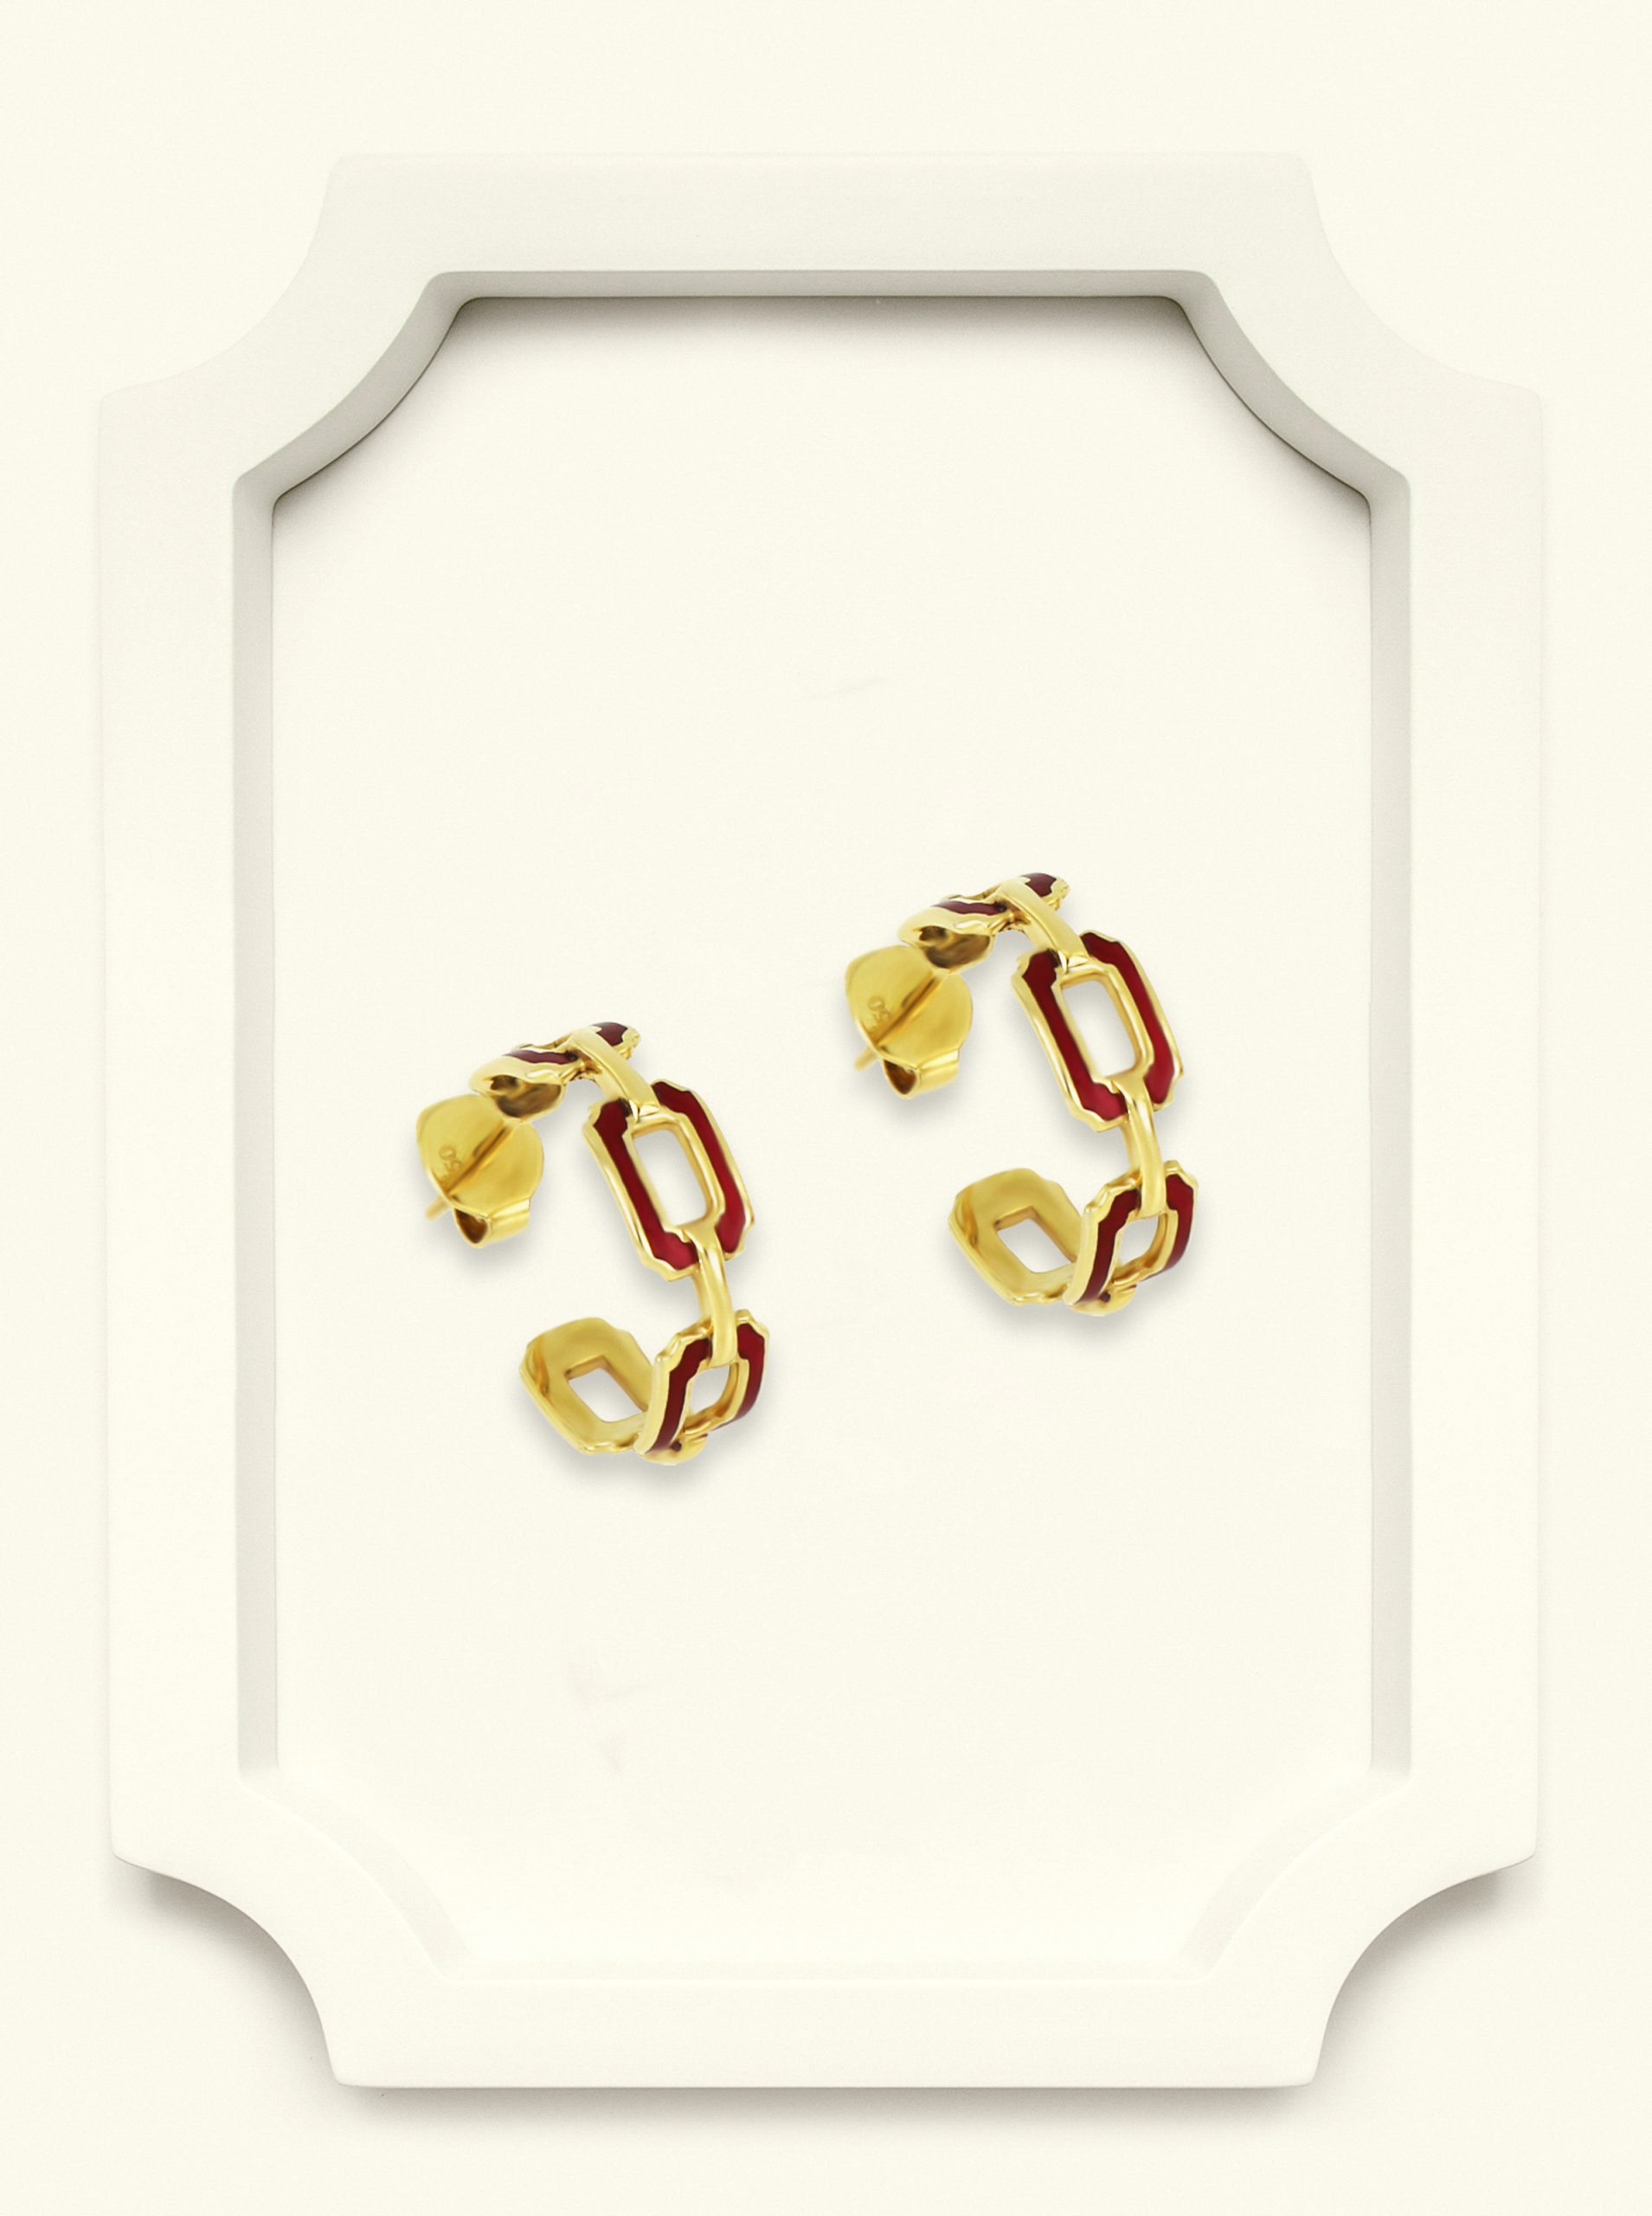 Saba Yellow Gold Signature Ring with Red Enamel